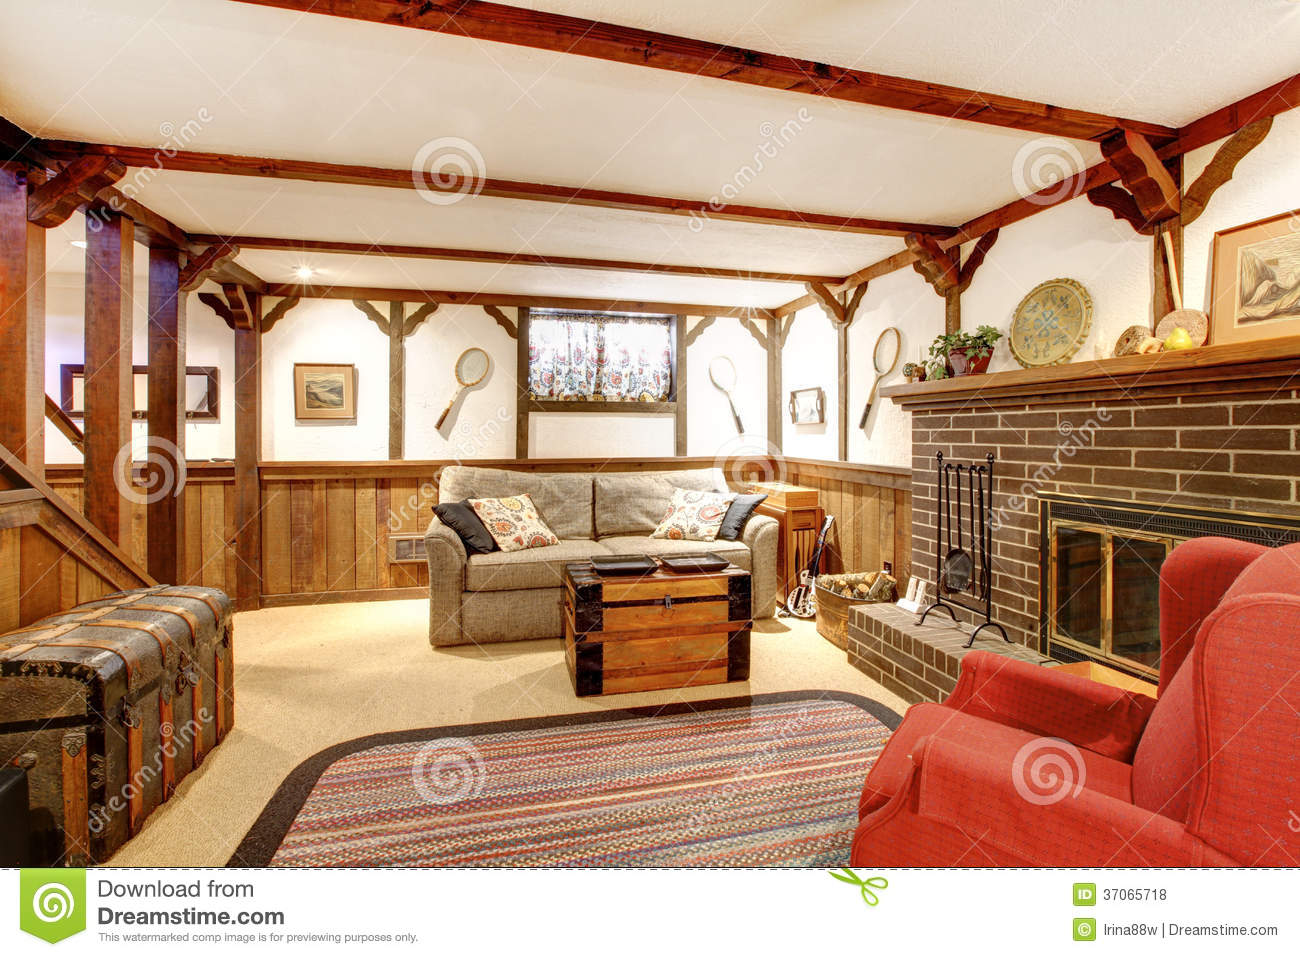 pictures of furnished living rooms modern room interior design photo gallery warm rustic with a fireplace stock